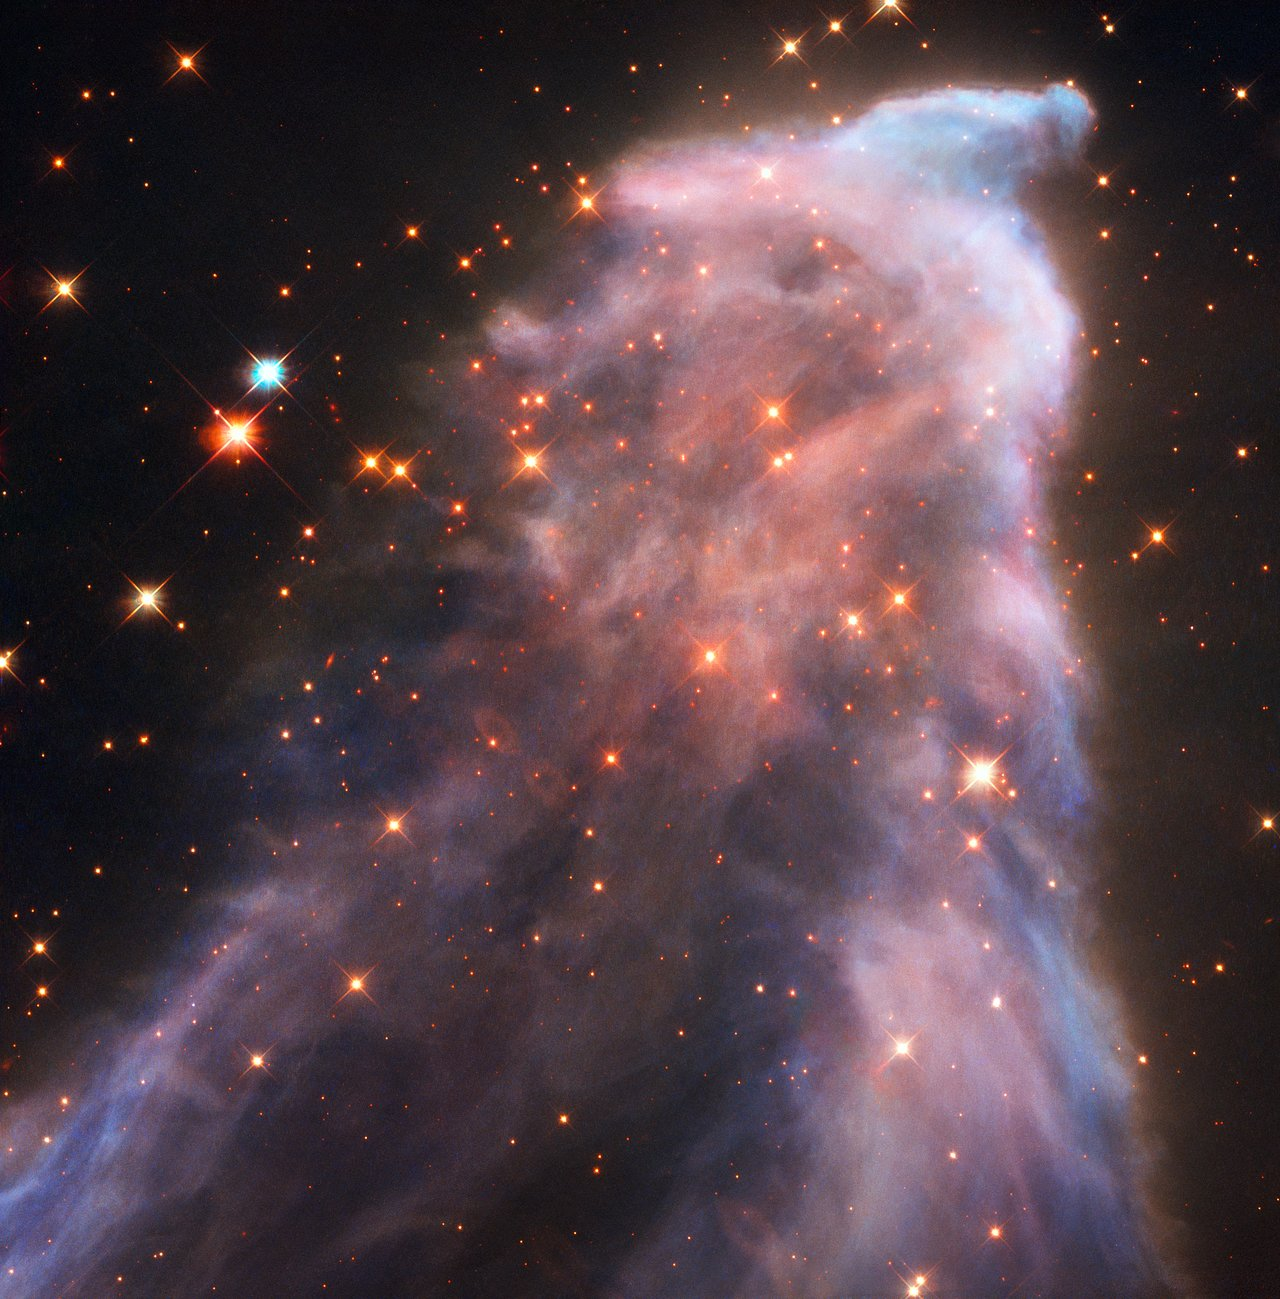 Hubble Image of the Ghosts of Cassiopeia